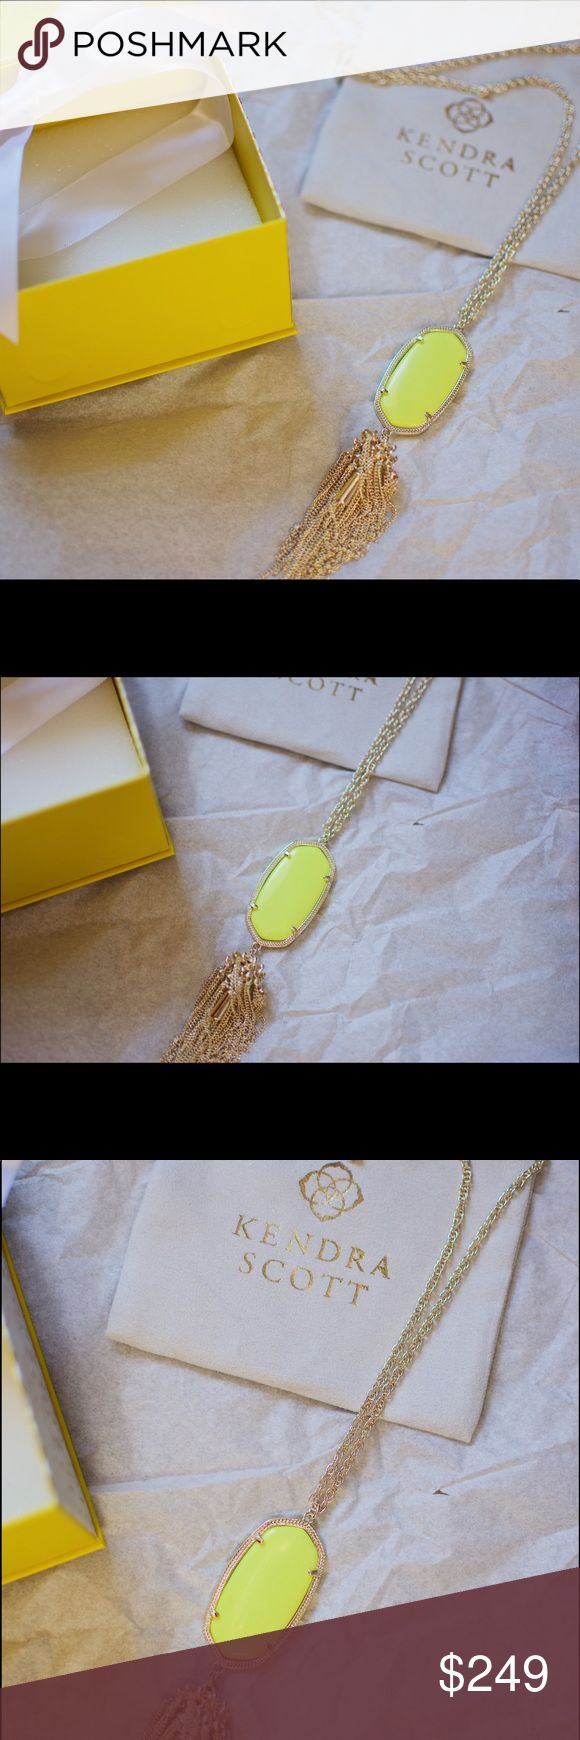 NWT Kendra Scott Rayne Necklace w Neon Yellow I've just switched out my 3+ year old Gold Rayne component with a fresh new one from my closest KS location (they do it for free!). I've had this Neon Yellow Rayne since it was sold online, but it's still in such good condition! As you can see in the last picture, there's a small smudge on the back of the stone, but I hardly noticed it until I went to sell it. I love this necklace so much, it was one of my first KS pieces ever! Looking for it to…